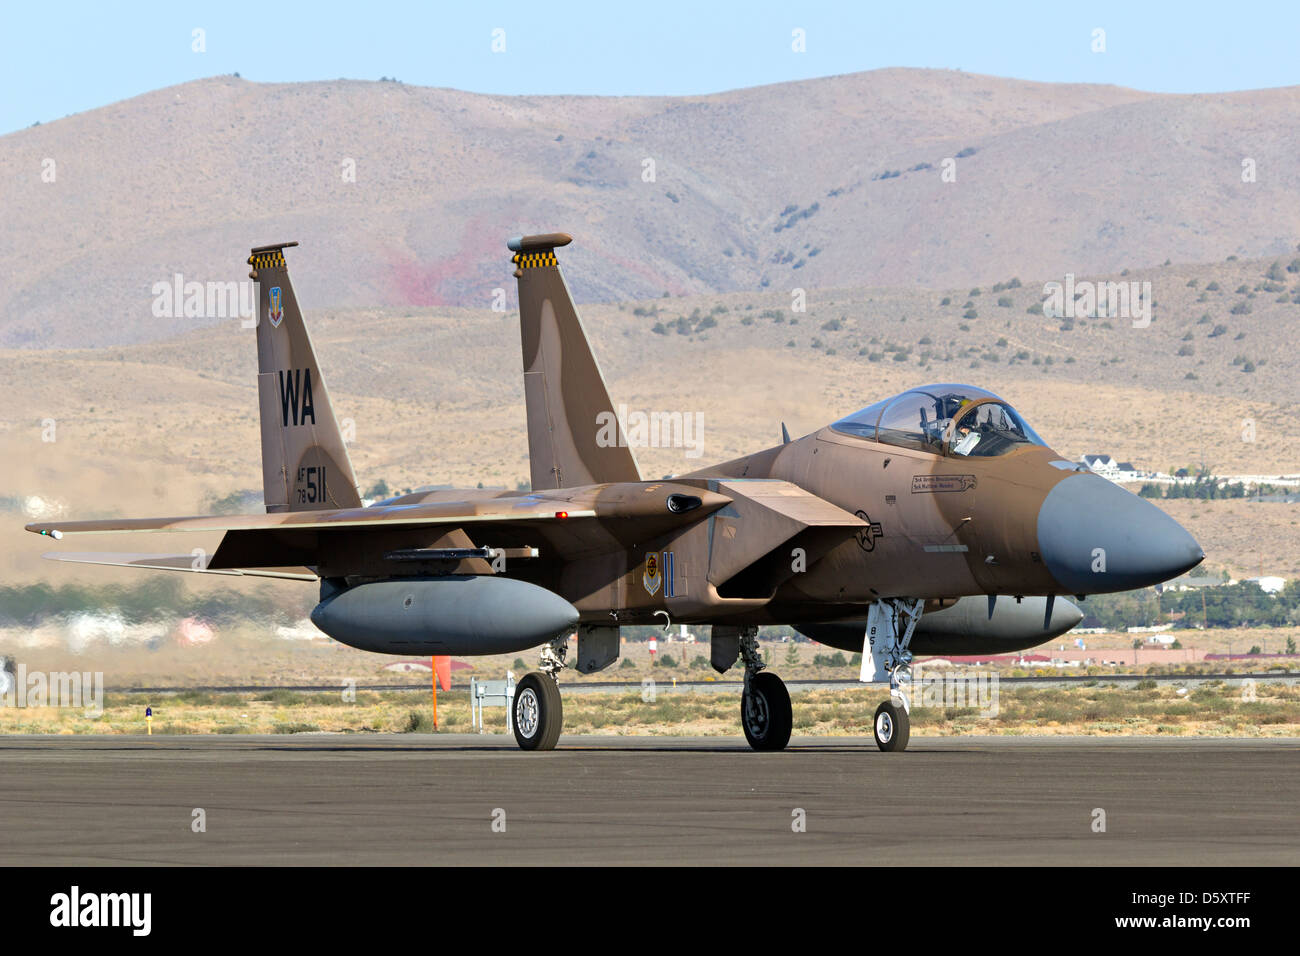 F-15 Eagle of the 57th Adversary Tactics Group based at Nellis AFB. - Stock Image